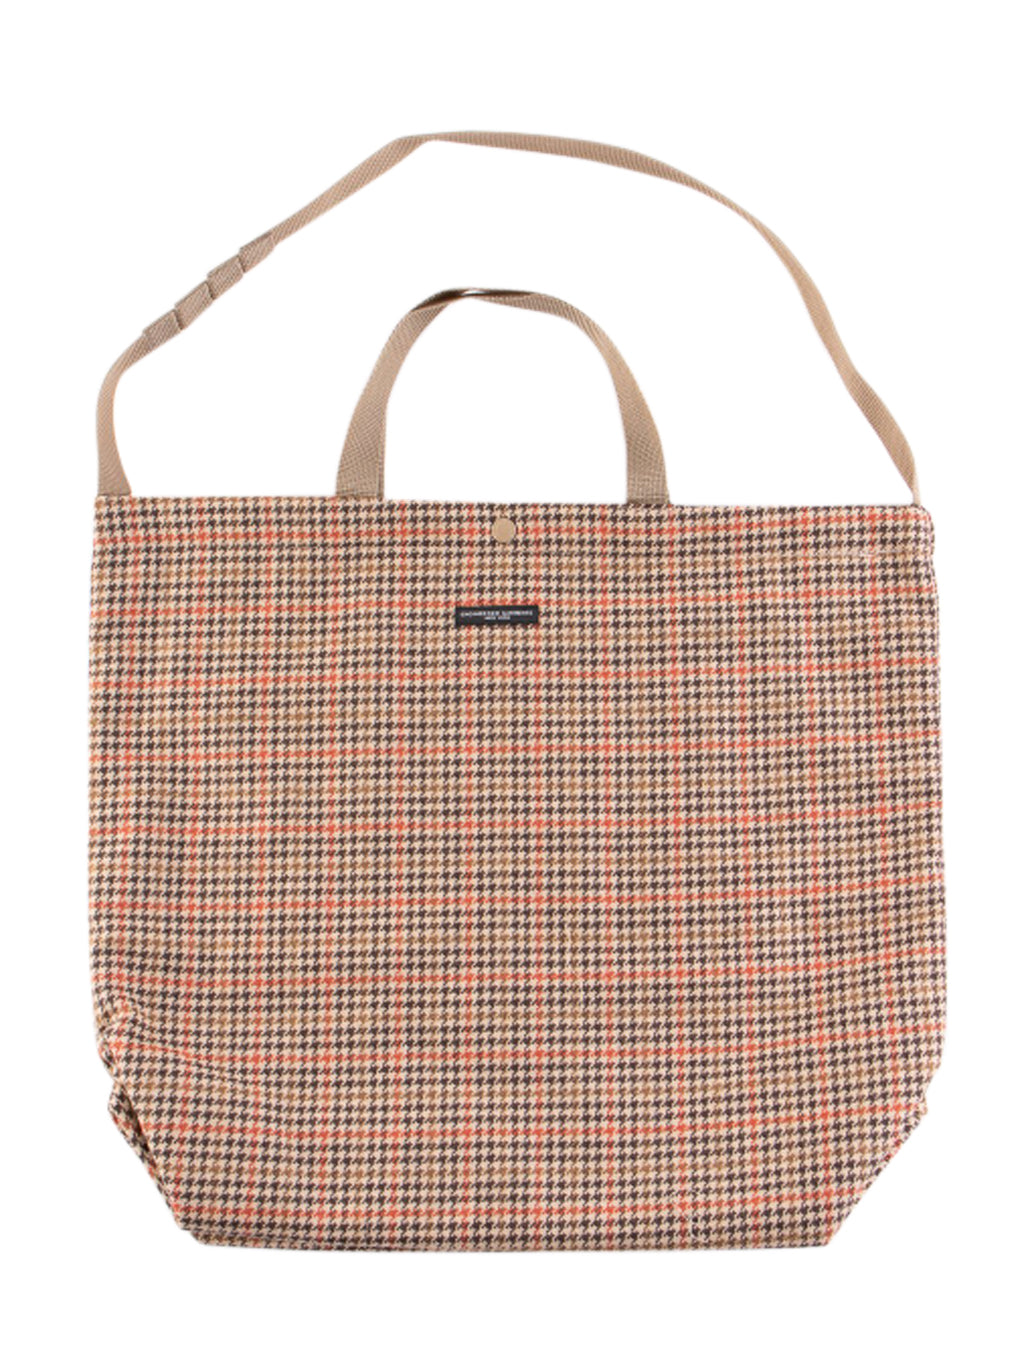 Tan and Orange Wool Big Gunclub Check Carry All Tote